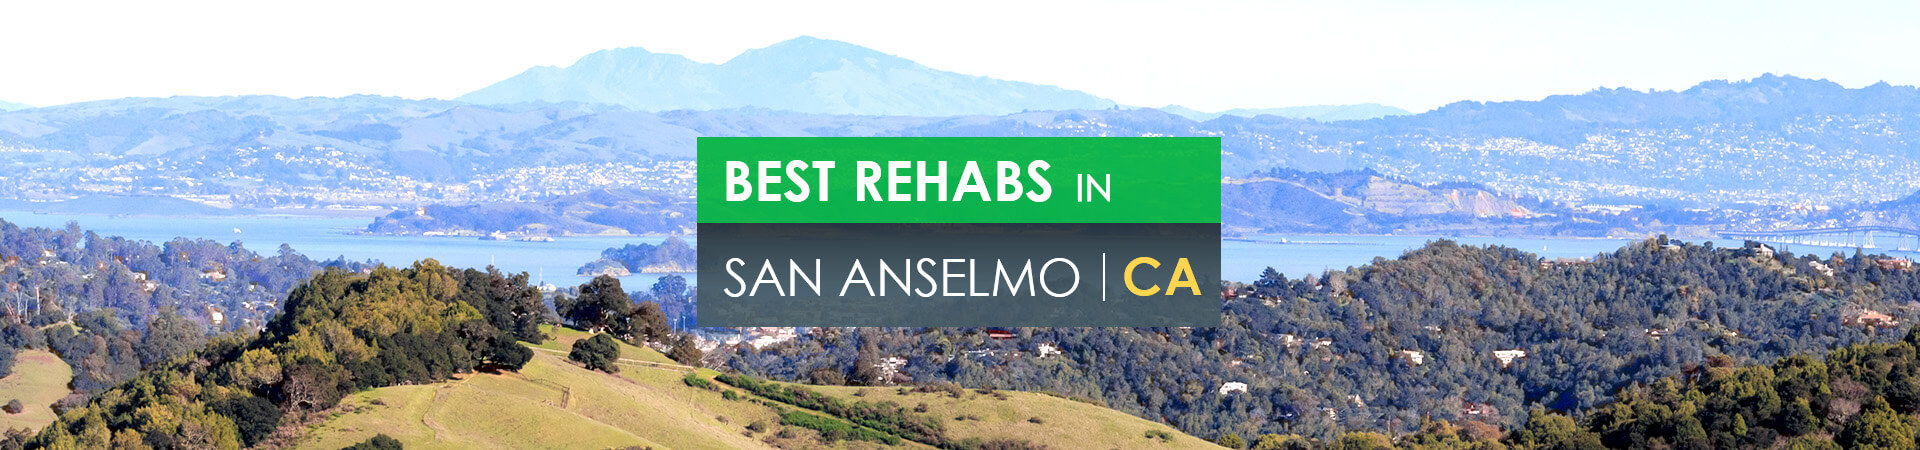 Best rehabs in San Anselmo, CA